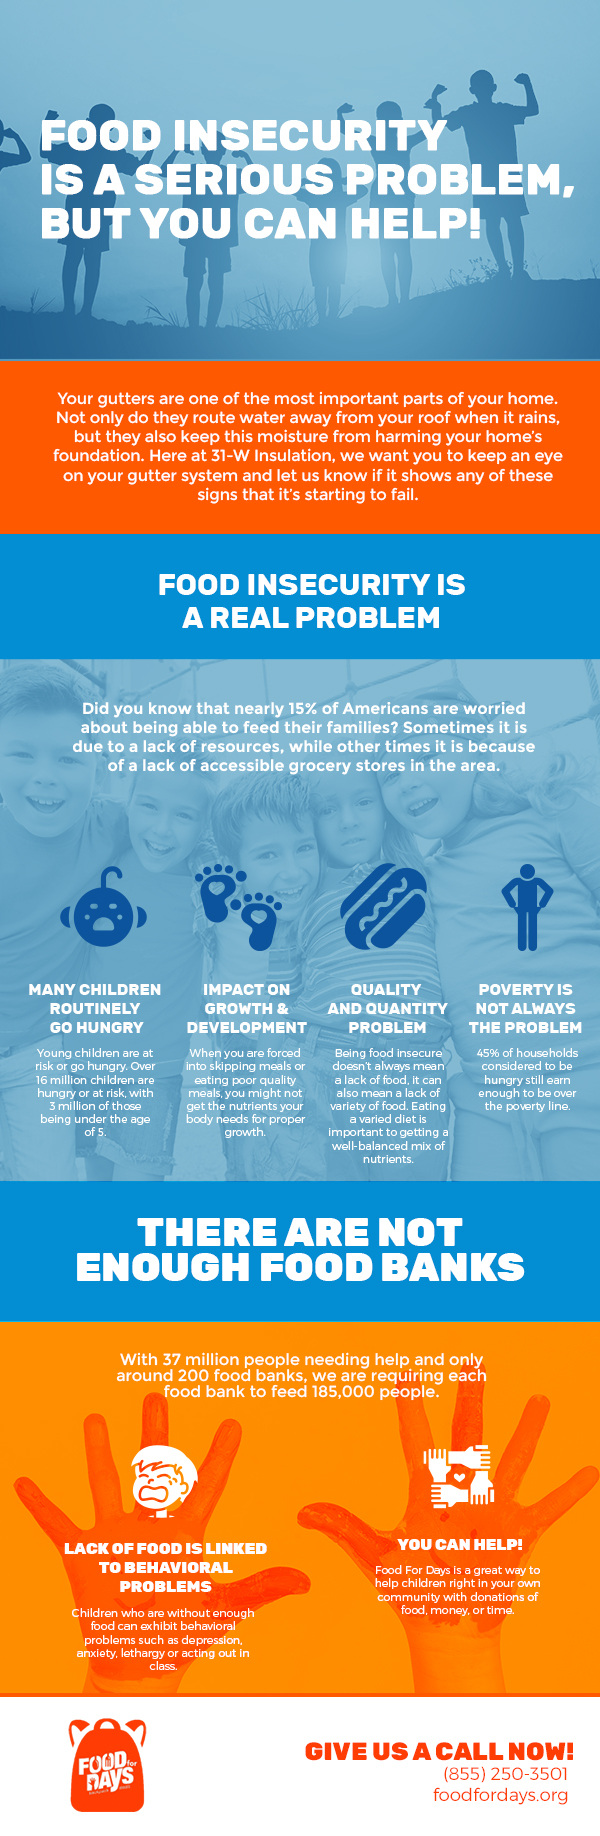 Food Insecurity is a Serious Problem, But You Can Help! [infographic]